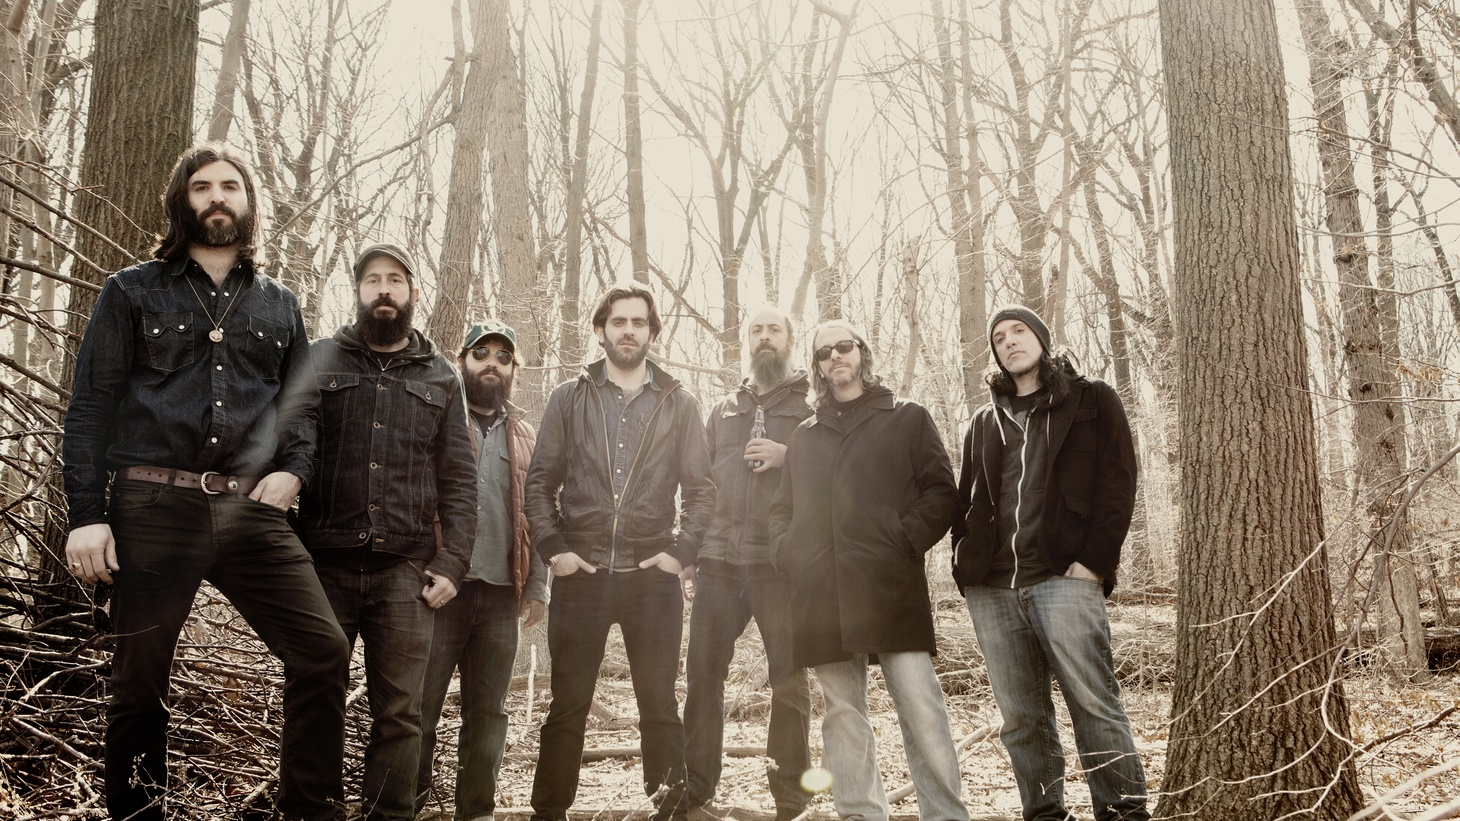 The Budos Band are masters at instrumental songs. Their hazy riffs, relentless percussion and sexy bass lines make for some exciting musical voyages.